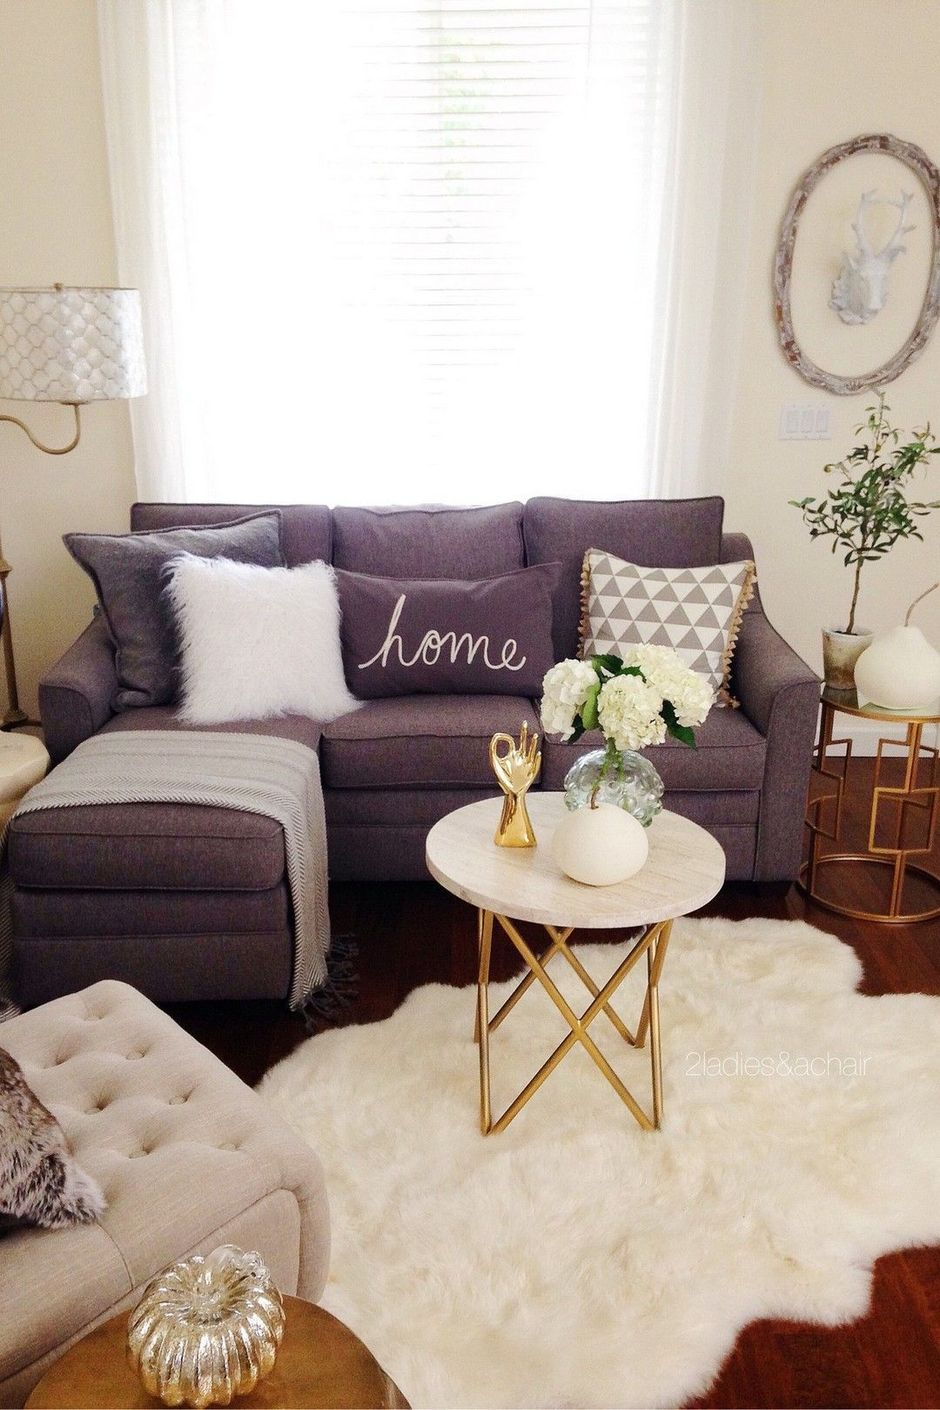 90 Tips How To Make Simple Apartment Decorations On Budget 85 Hoommy Com